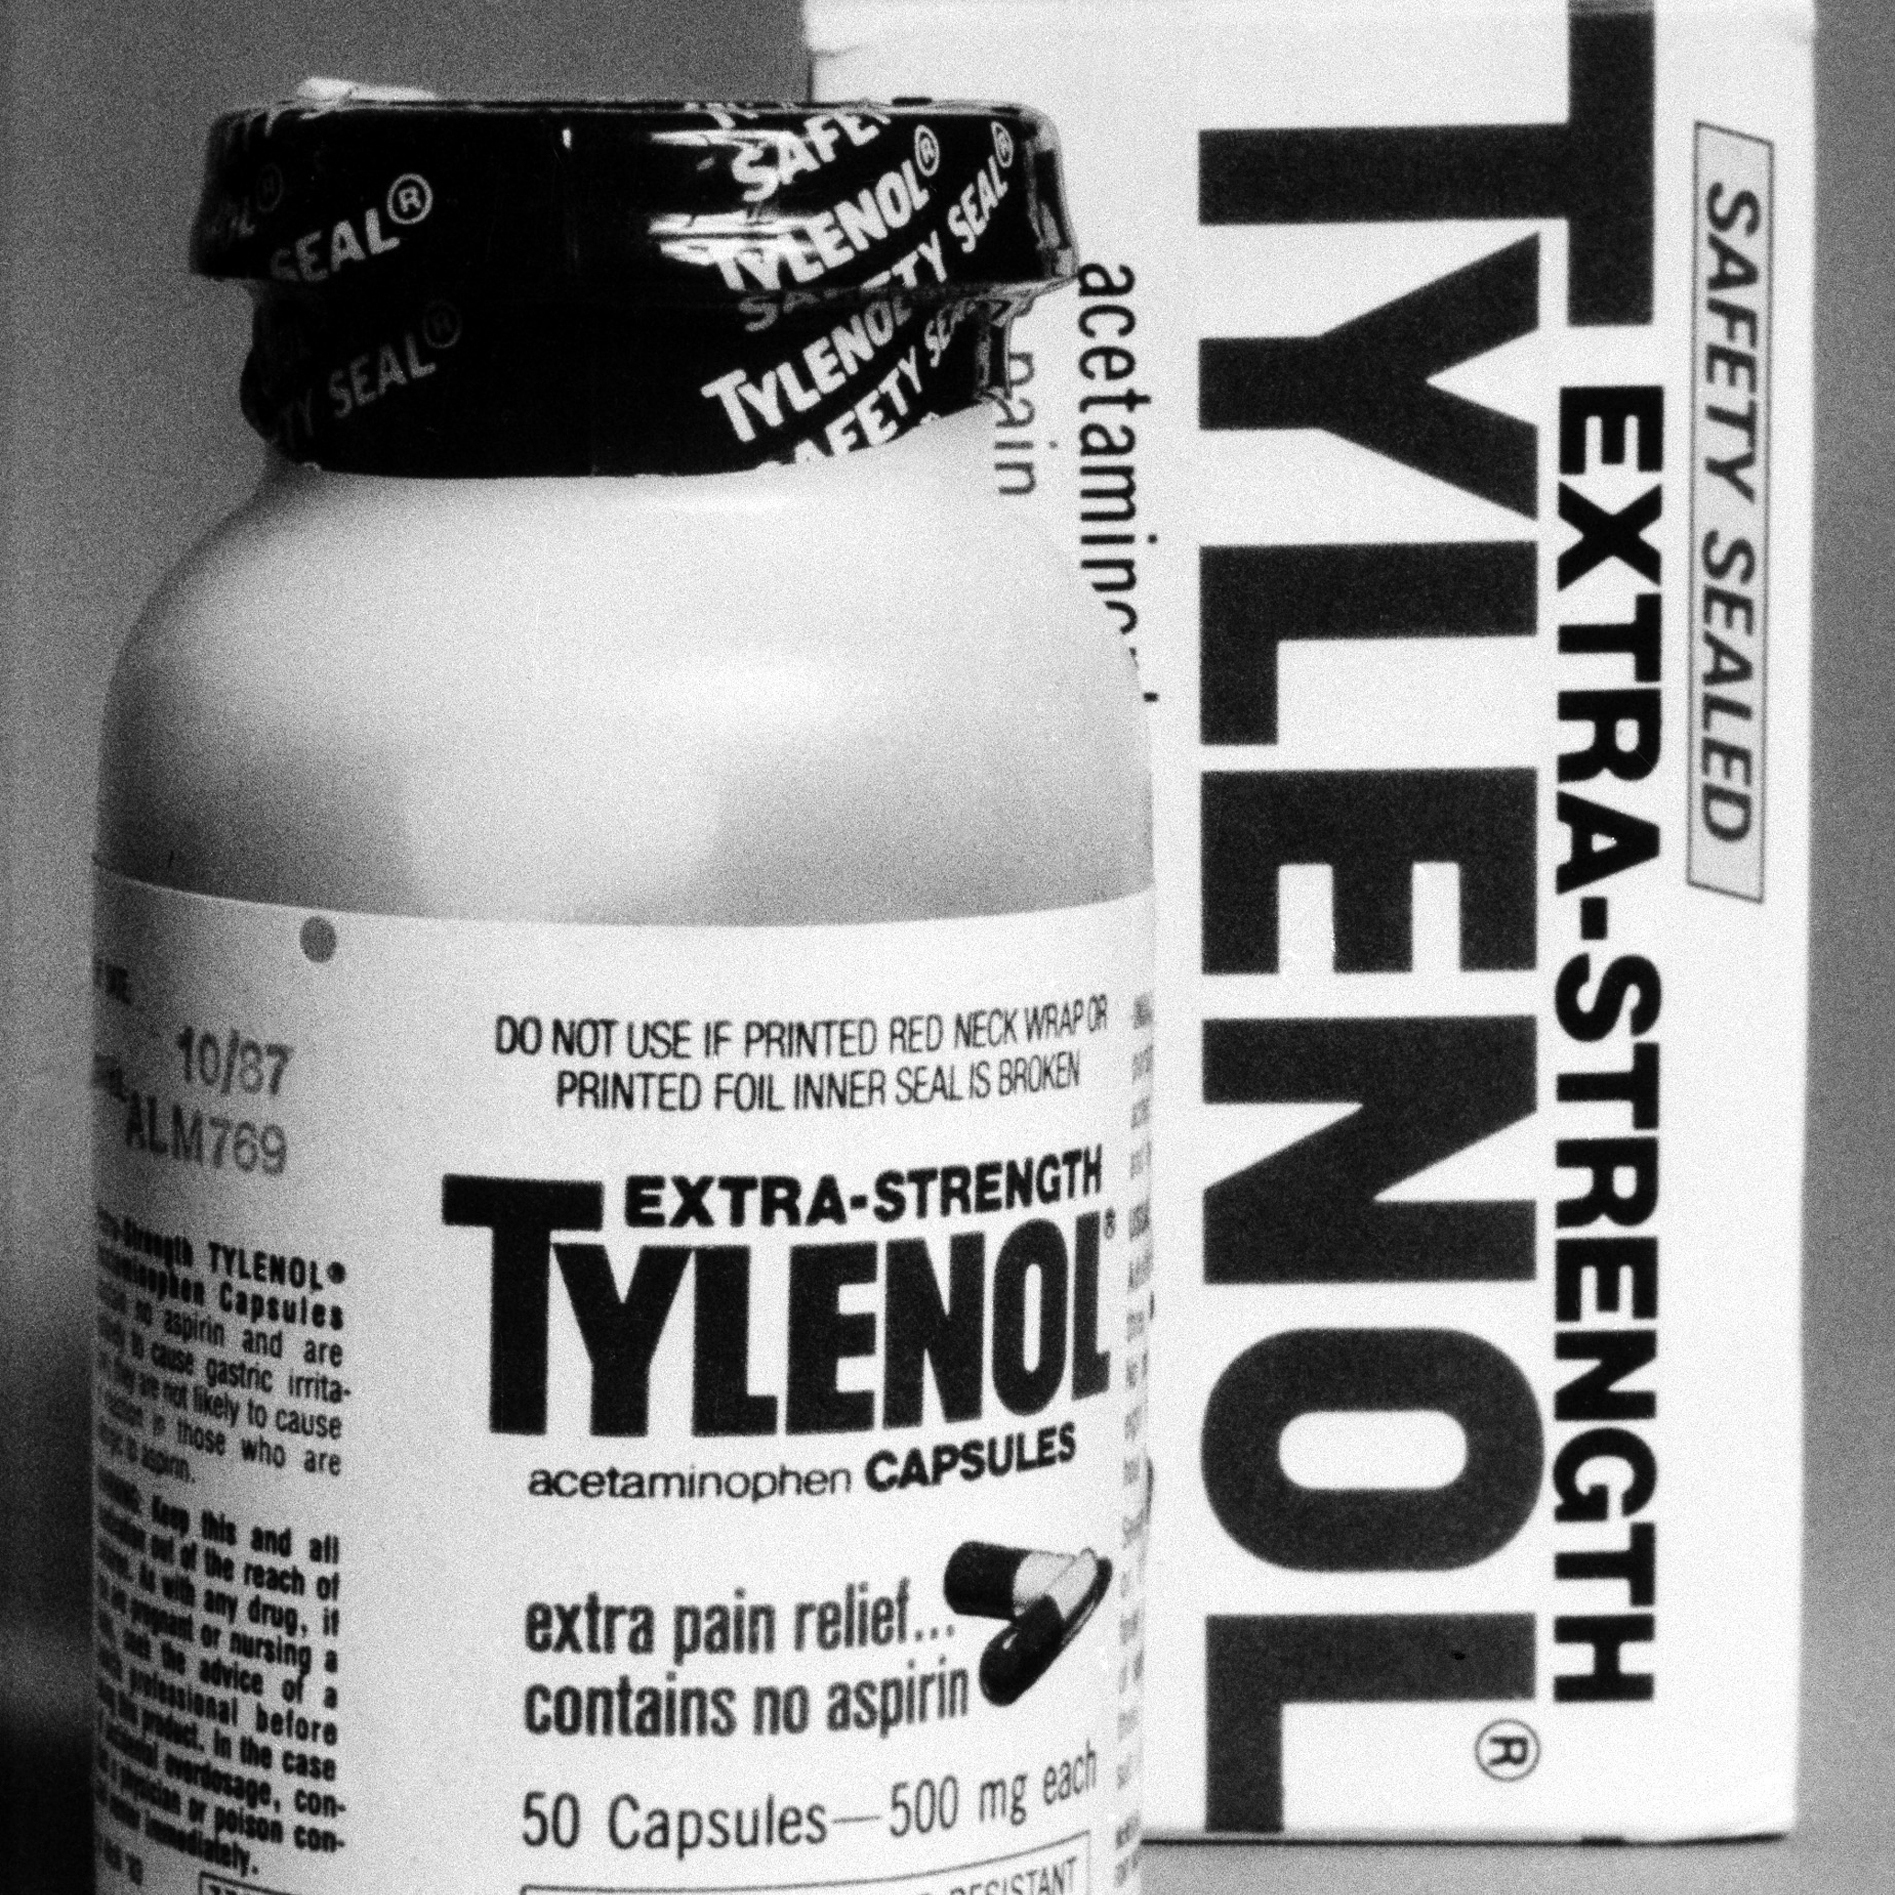 The Food and Drug Administration warned that consumers should avoid using Tylenol capsules until further notice, Feb. 13, 1986.